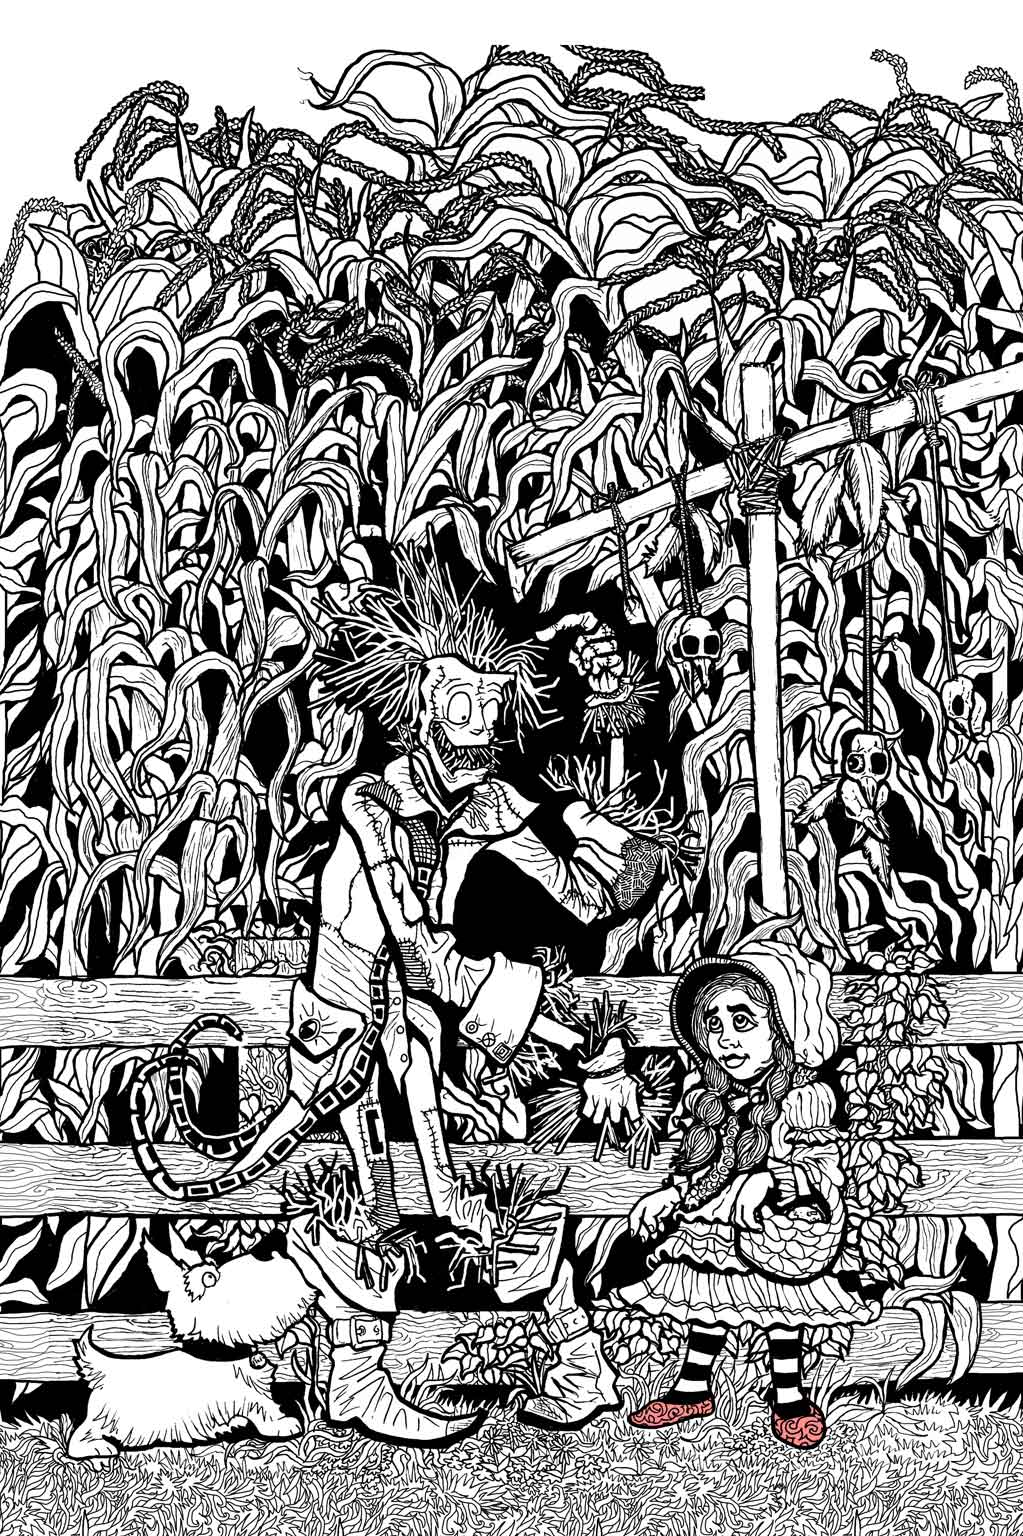 wizard of oz coloring book by ethan mongin at coroflot com